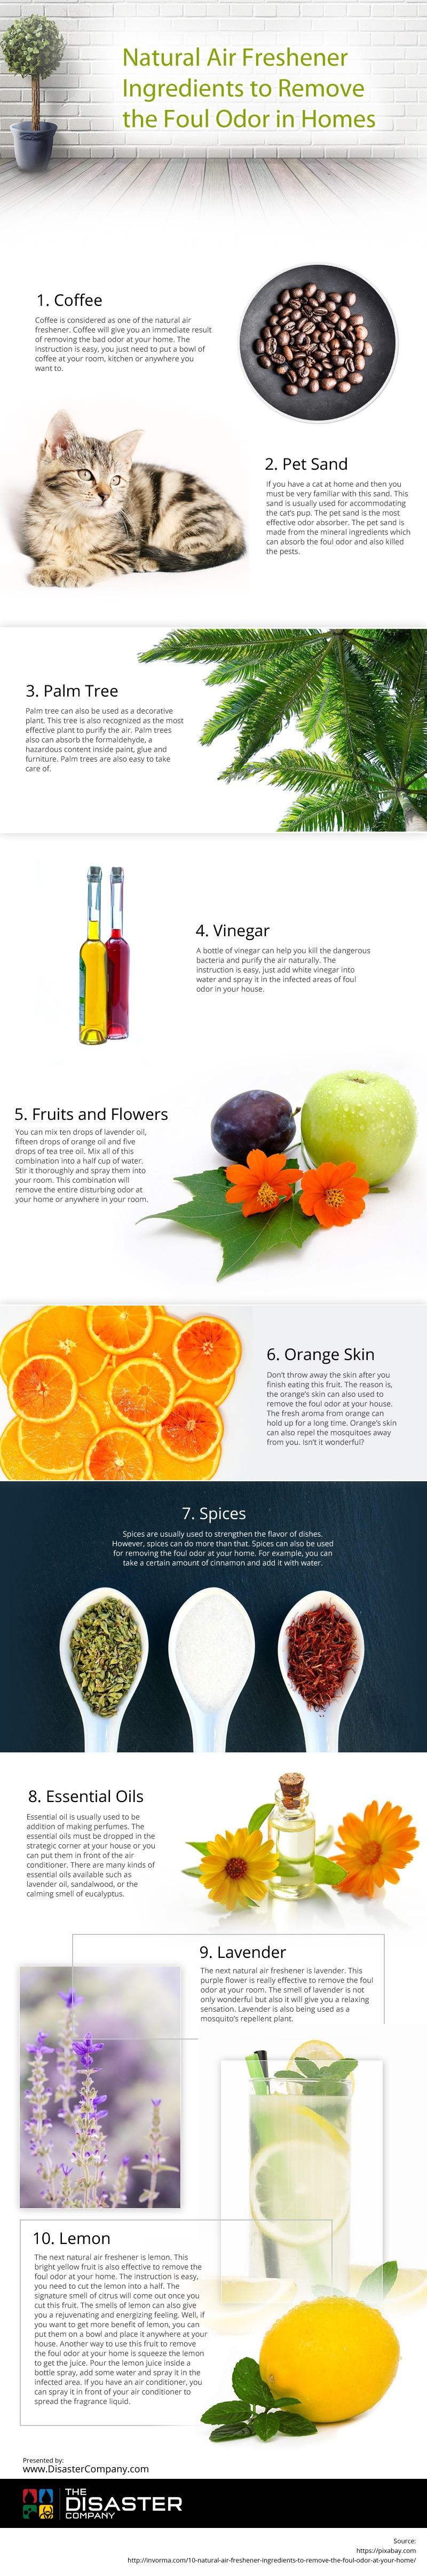 Natural-Air-Freshener-Ingredients-to-Remove-the-Foul-Odor-in-Homes Infographic